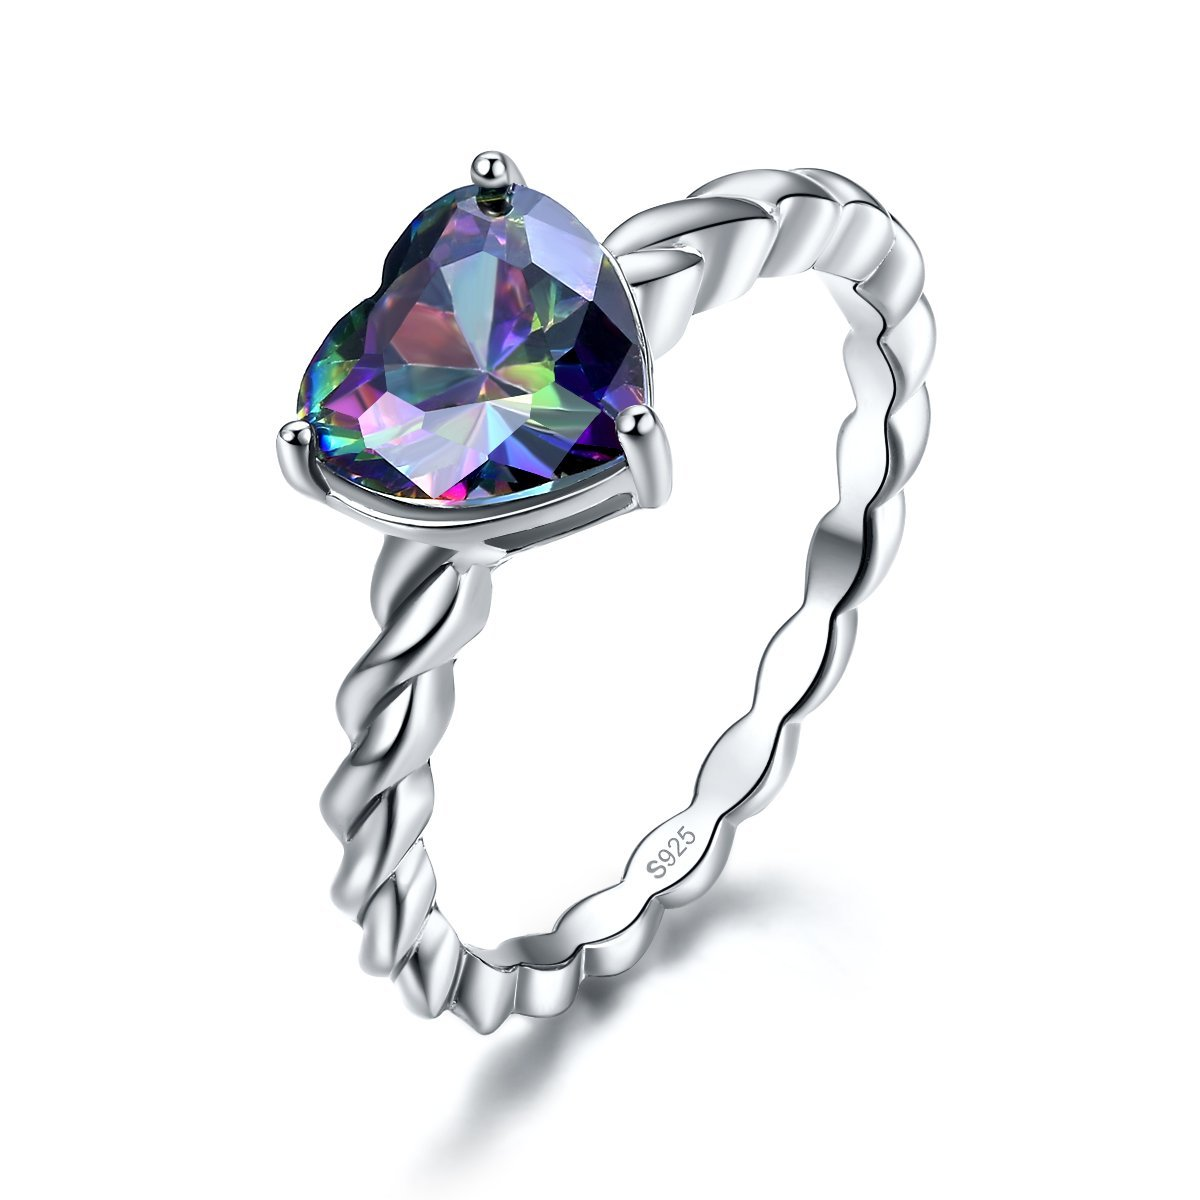 Merthus Womens 925 Sterling Silver Rope Band Created Mystic Rainbow Topaz Heart Ring